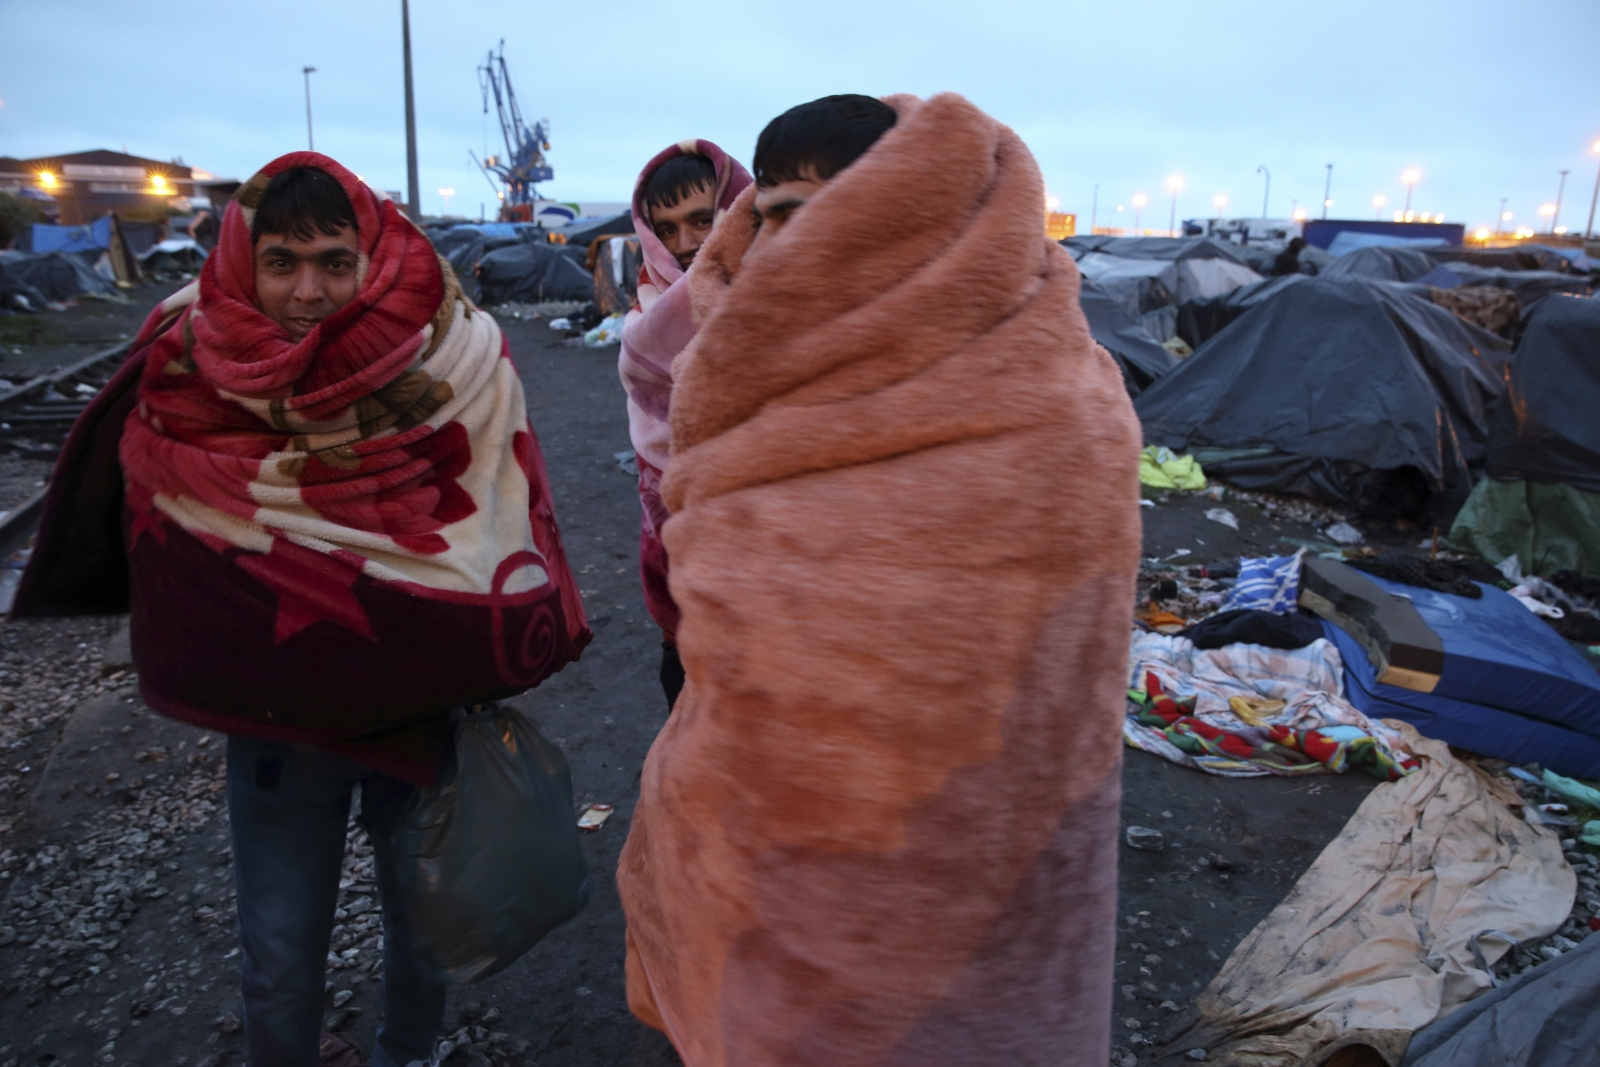 Afghan immigrants use blankets to keep warm near makeshift shelters before French police evacuated them from an improvised camp in Calais, northern France, May 28, 2014.